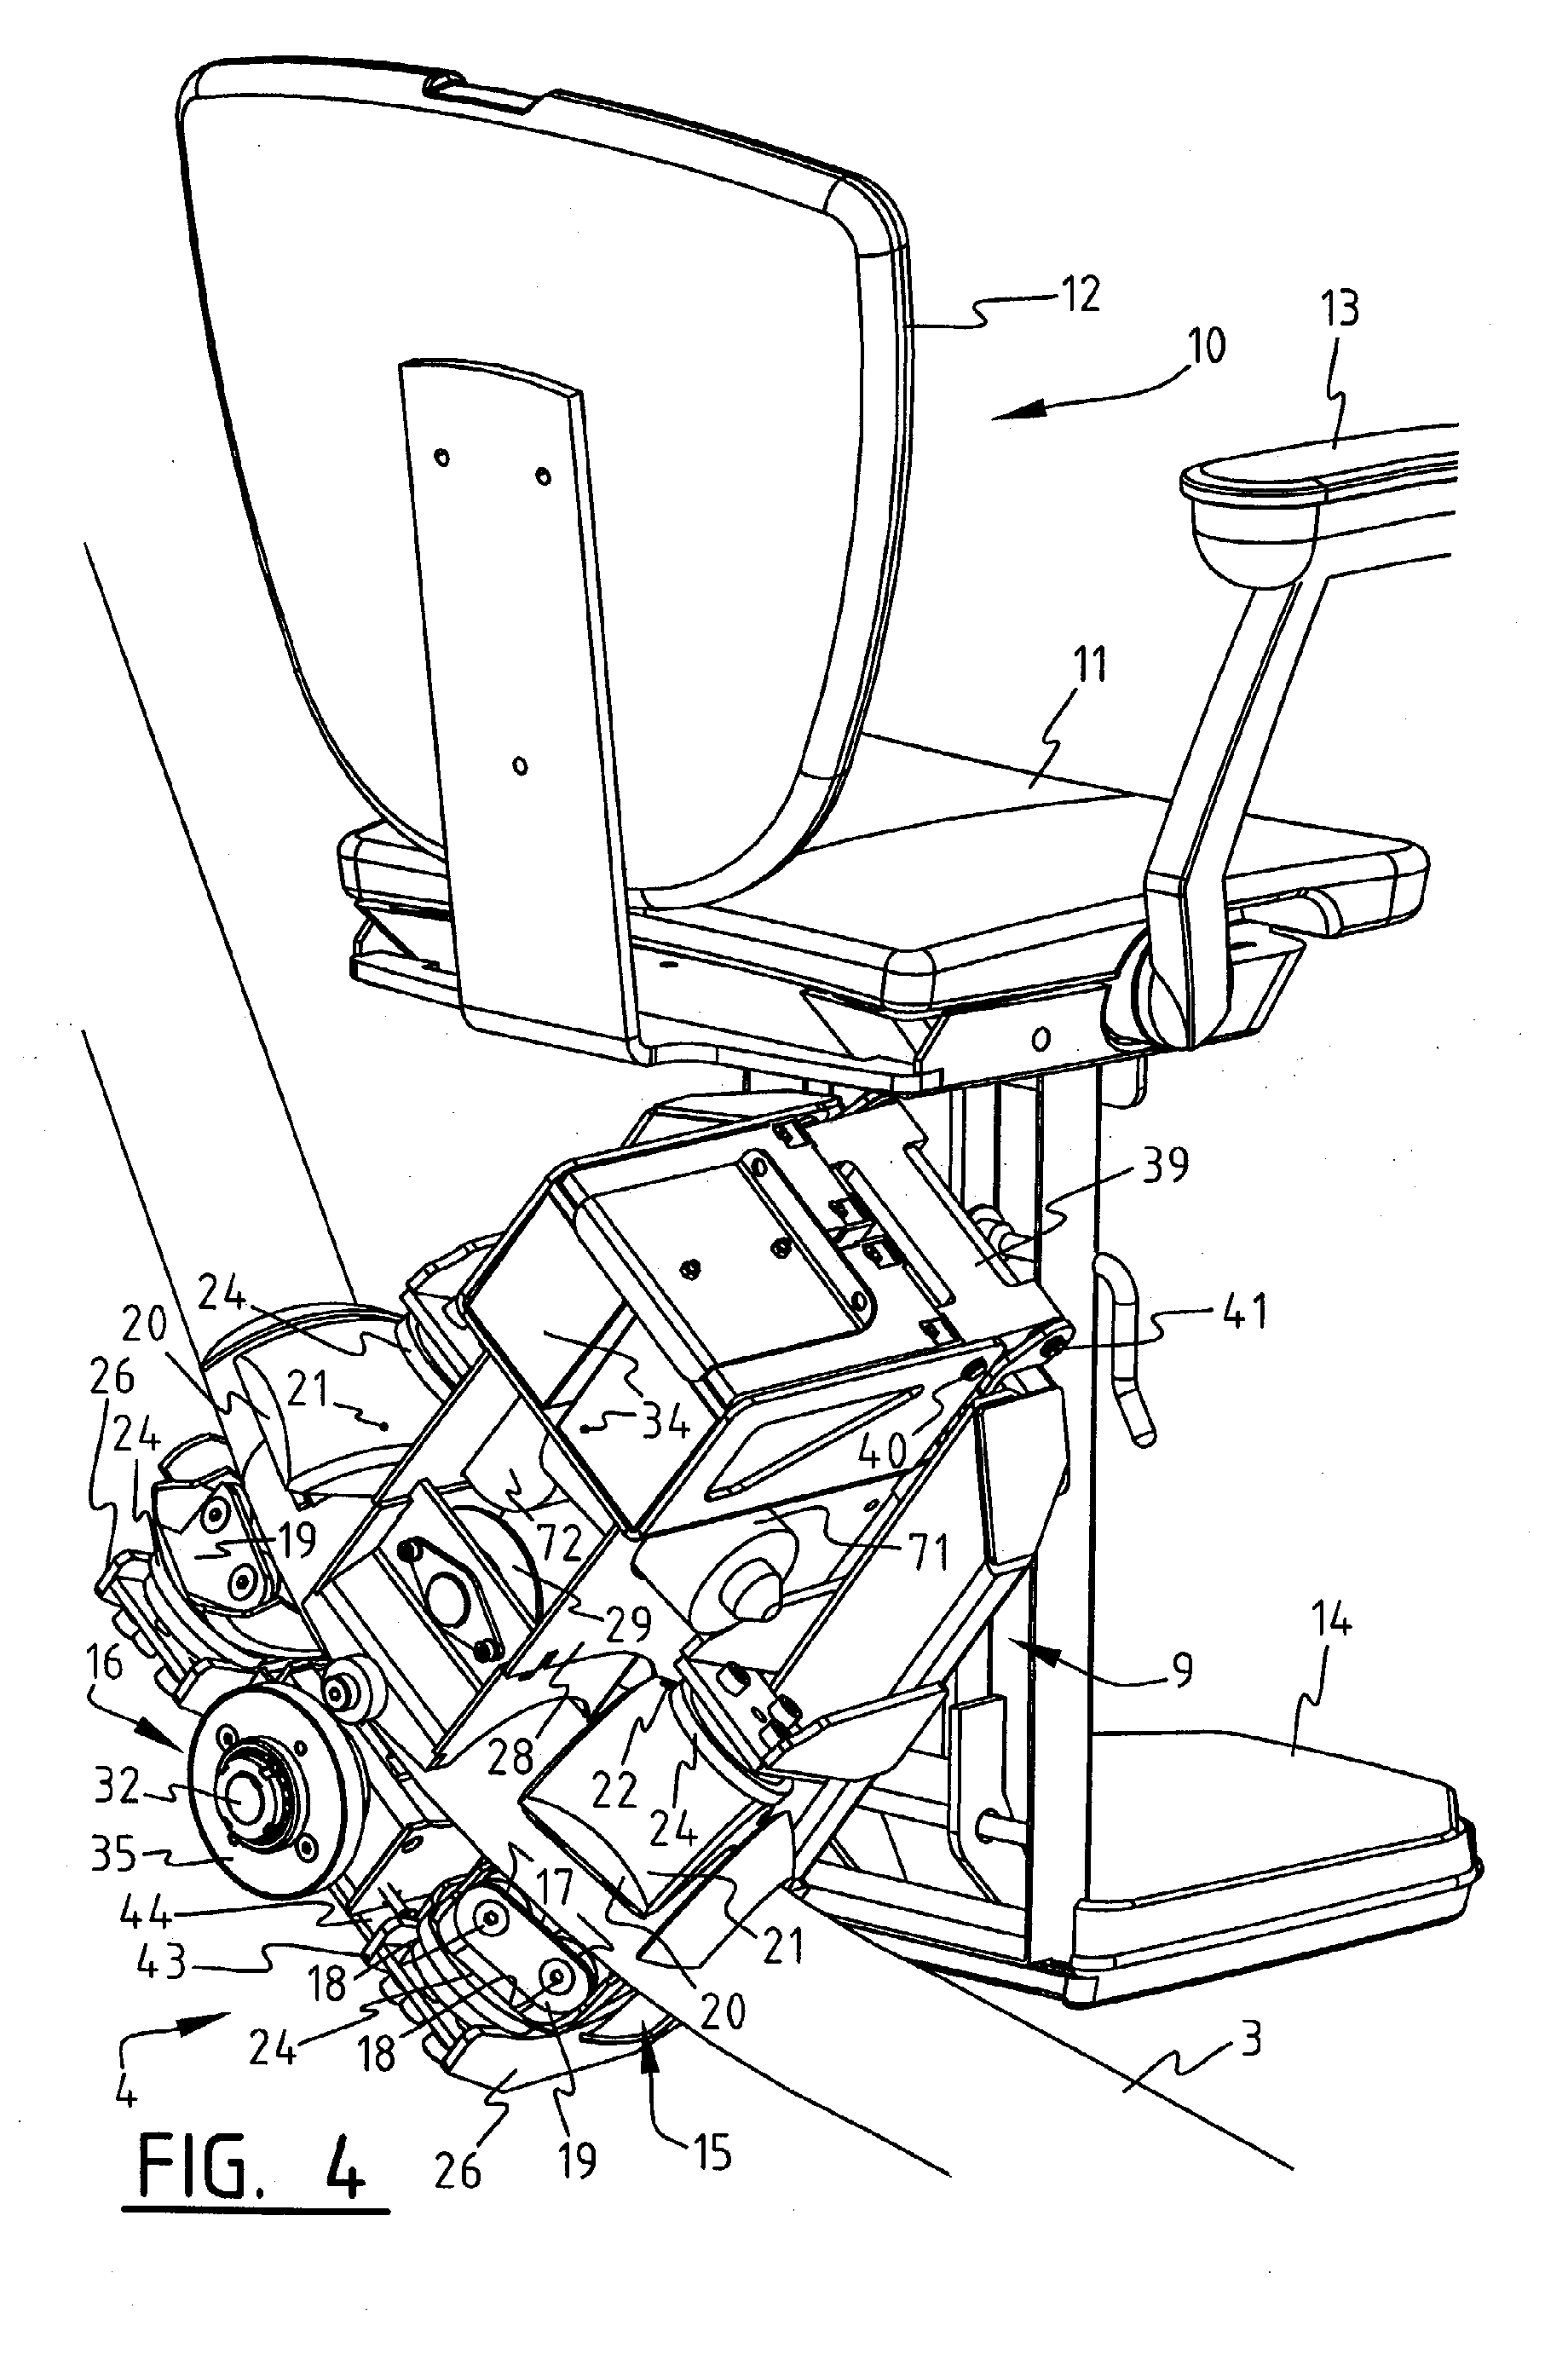 Stannah 420 Wiring Diagram 26 Images Jlg 2632e2 Patent Ep1449801a1 Drive For A Stair Lift Google Patents